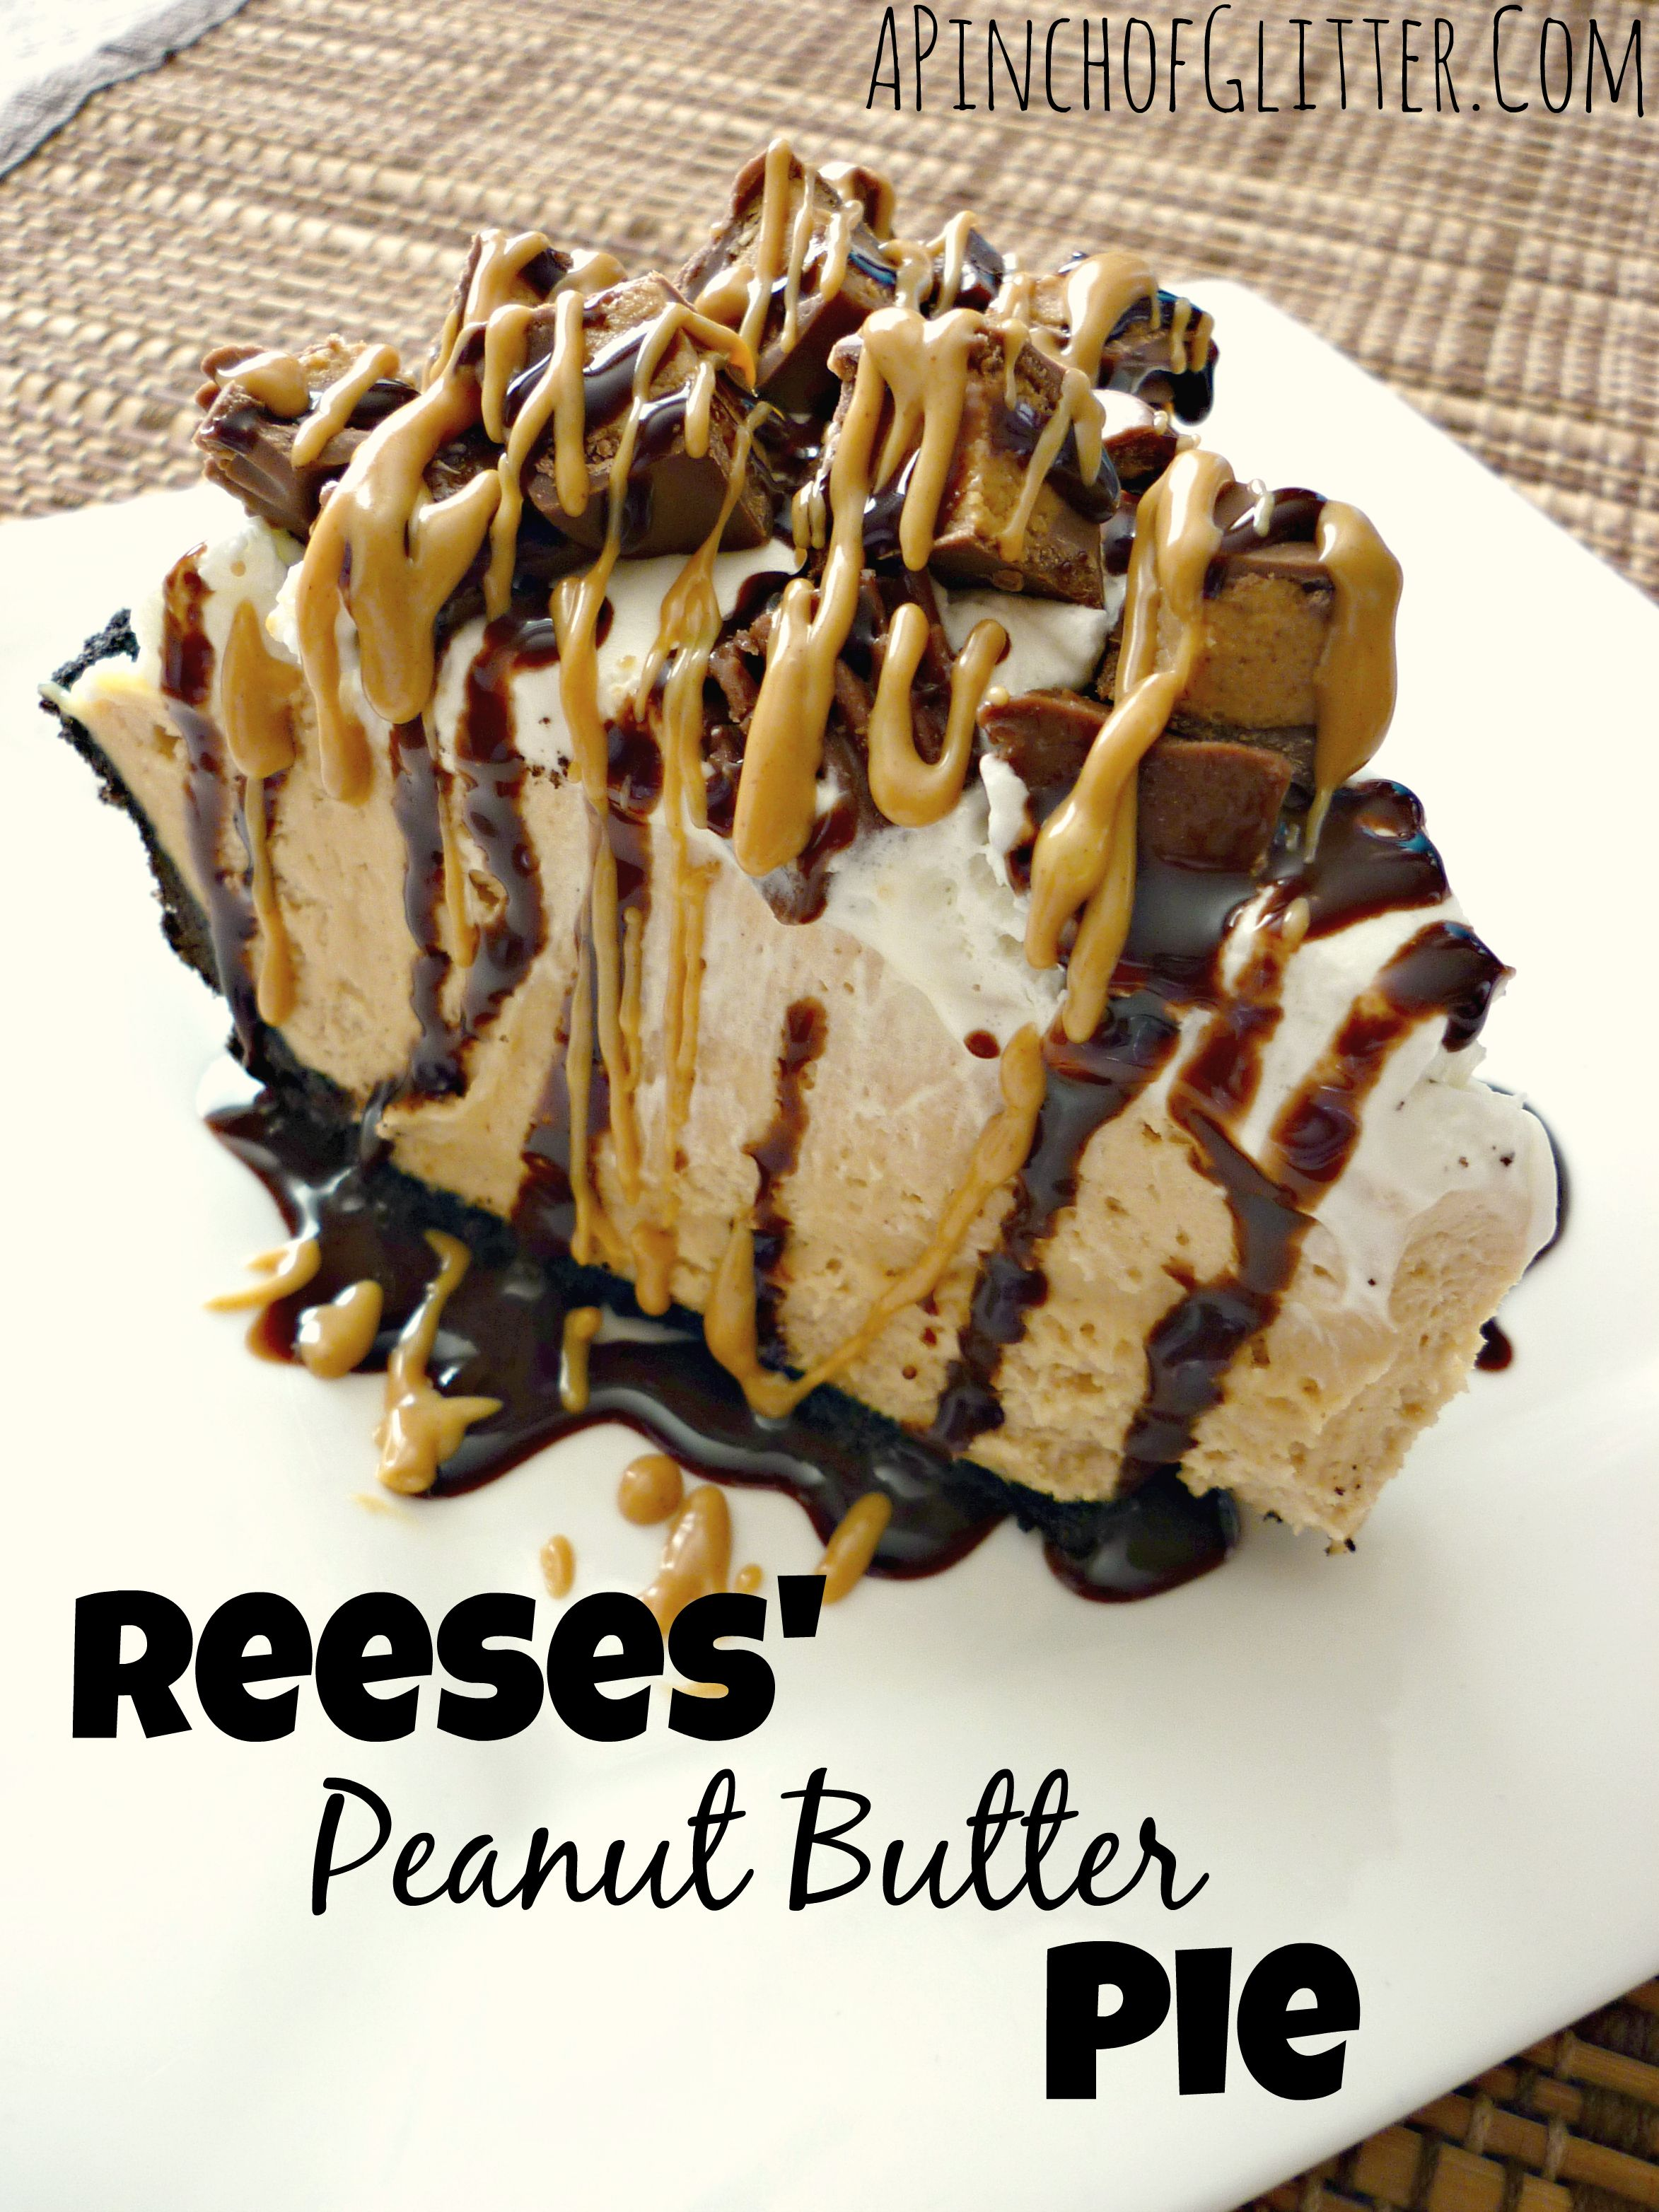 Reese S Peanut Butter Pie Mandy S Recipe Box Recipe Peanut Butter Pie Recipes Desserts Reese Peanut Butter Pie